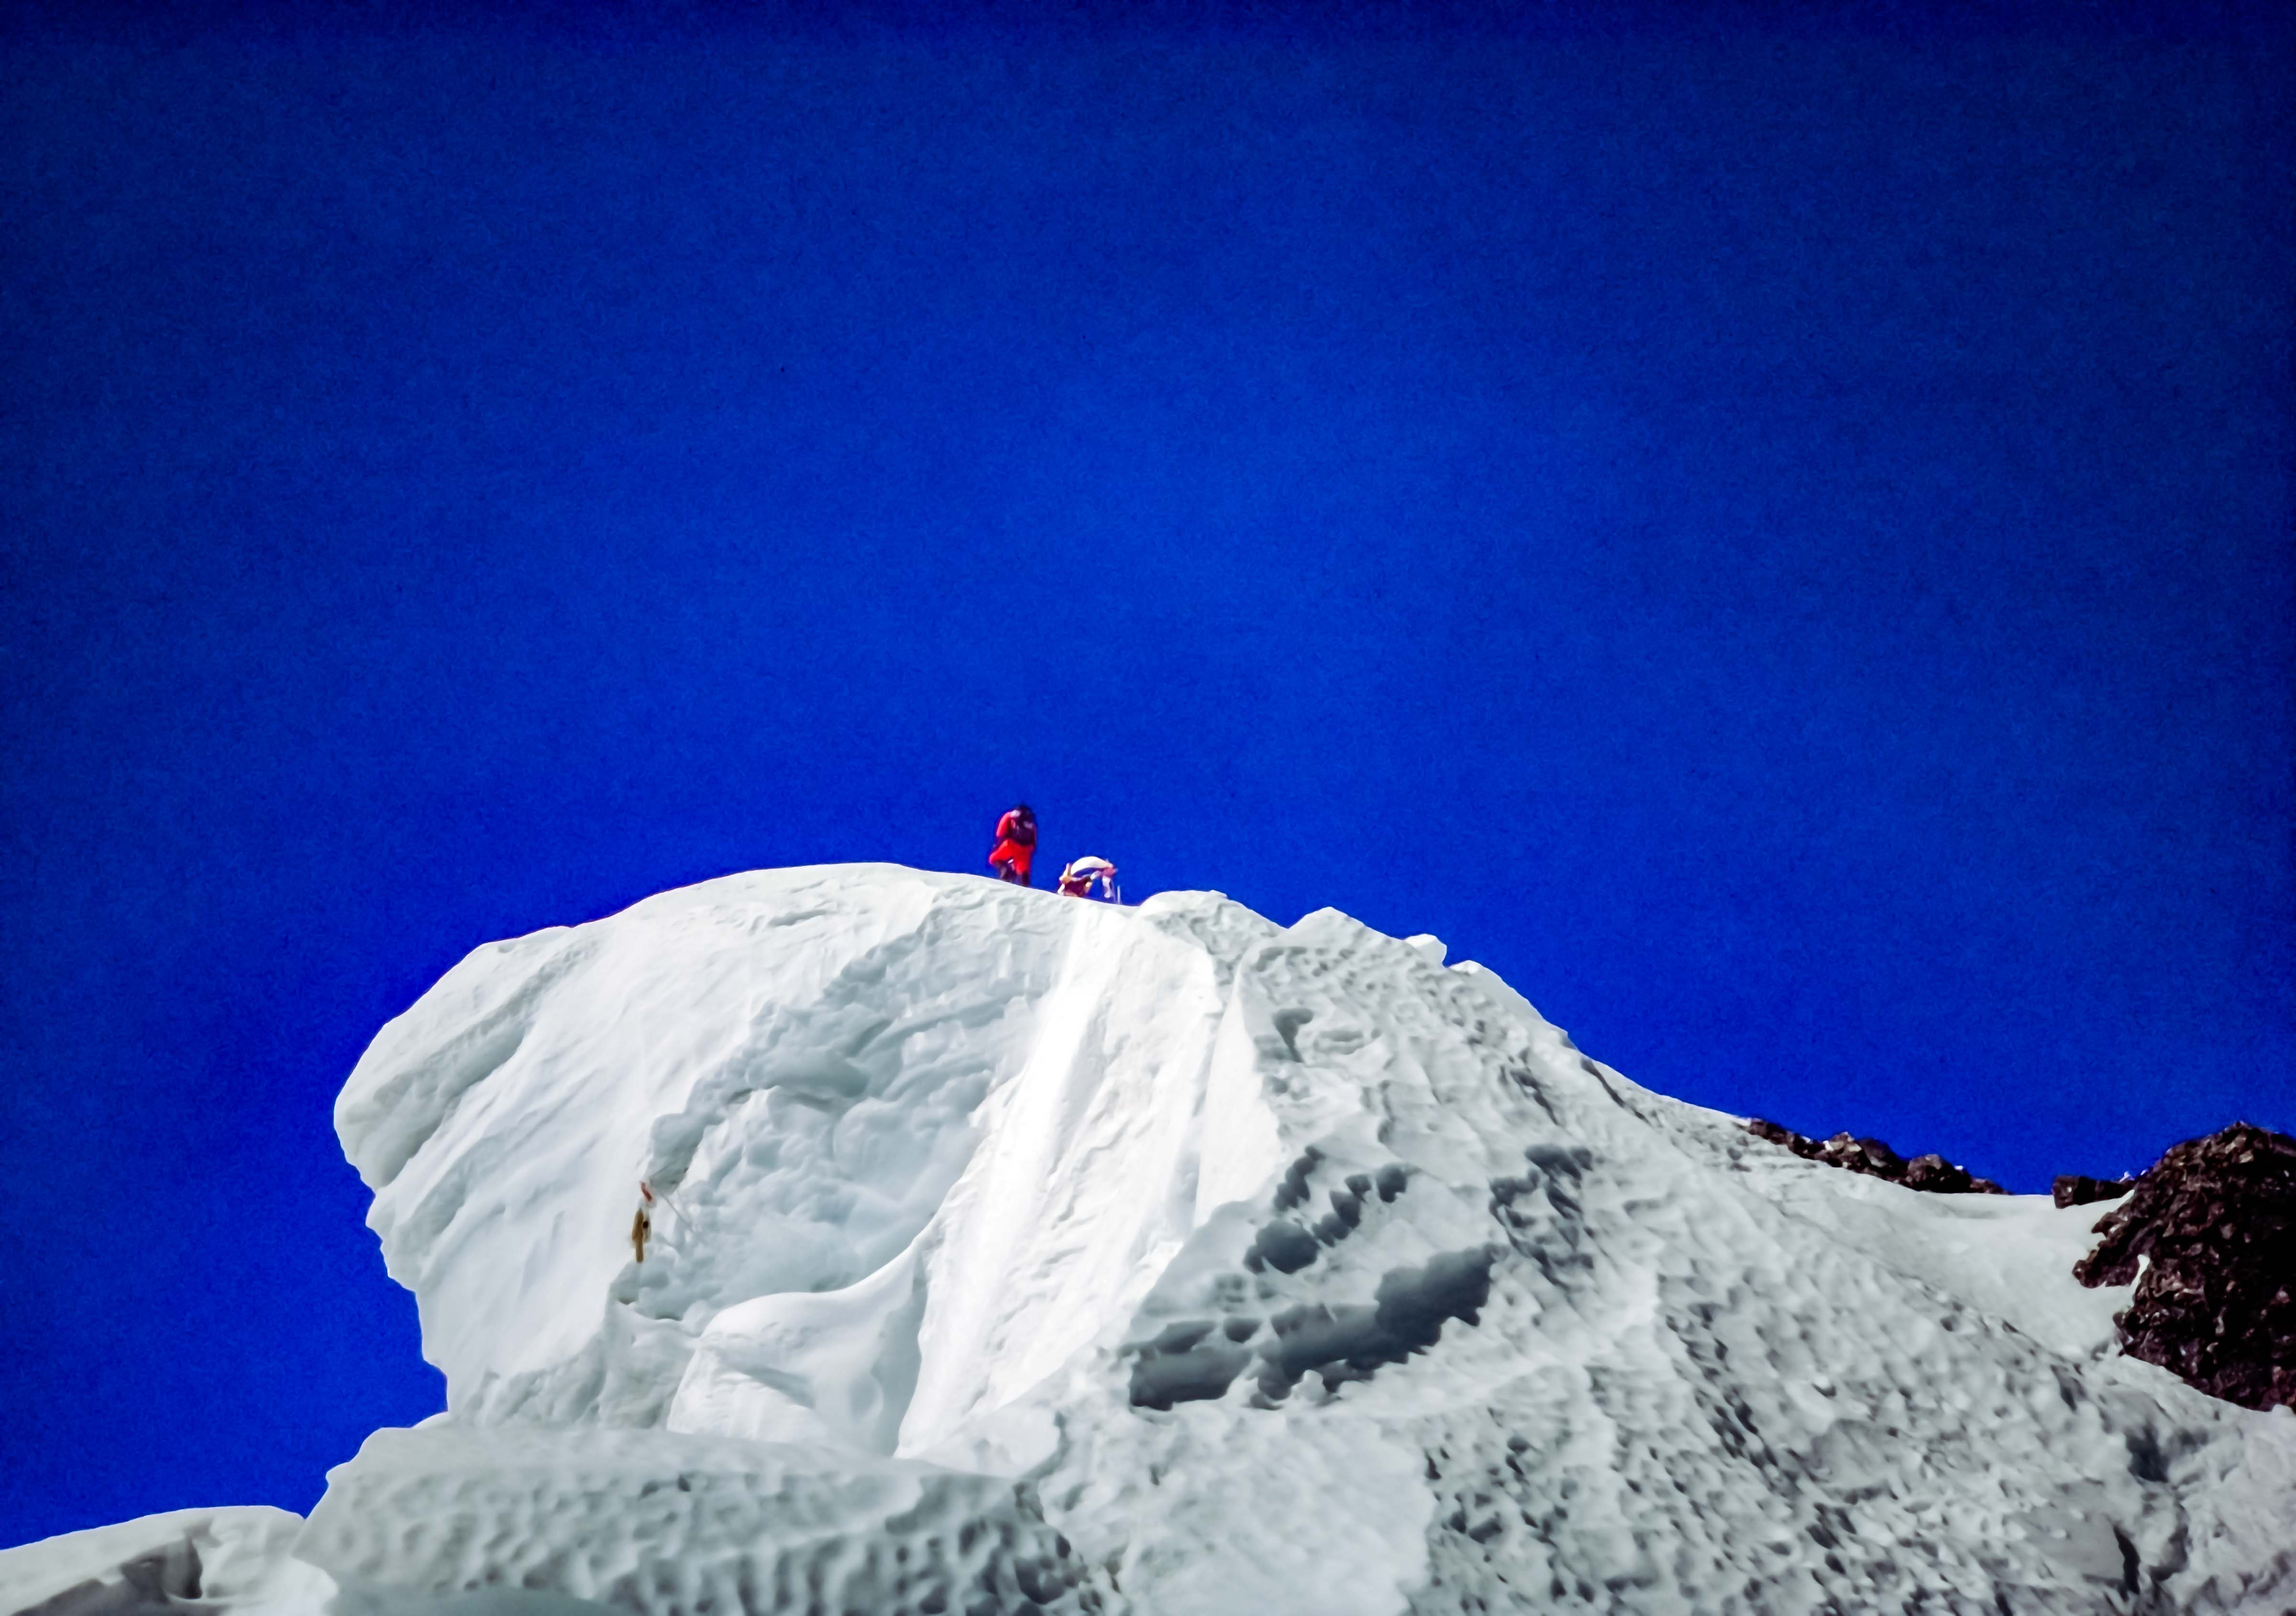 Tibet, Everest Summit, Lhakpa Gelu, Cornice Taken At 8830m, 1995